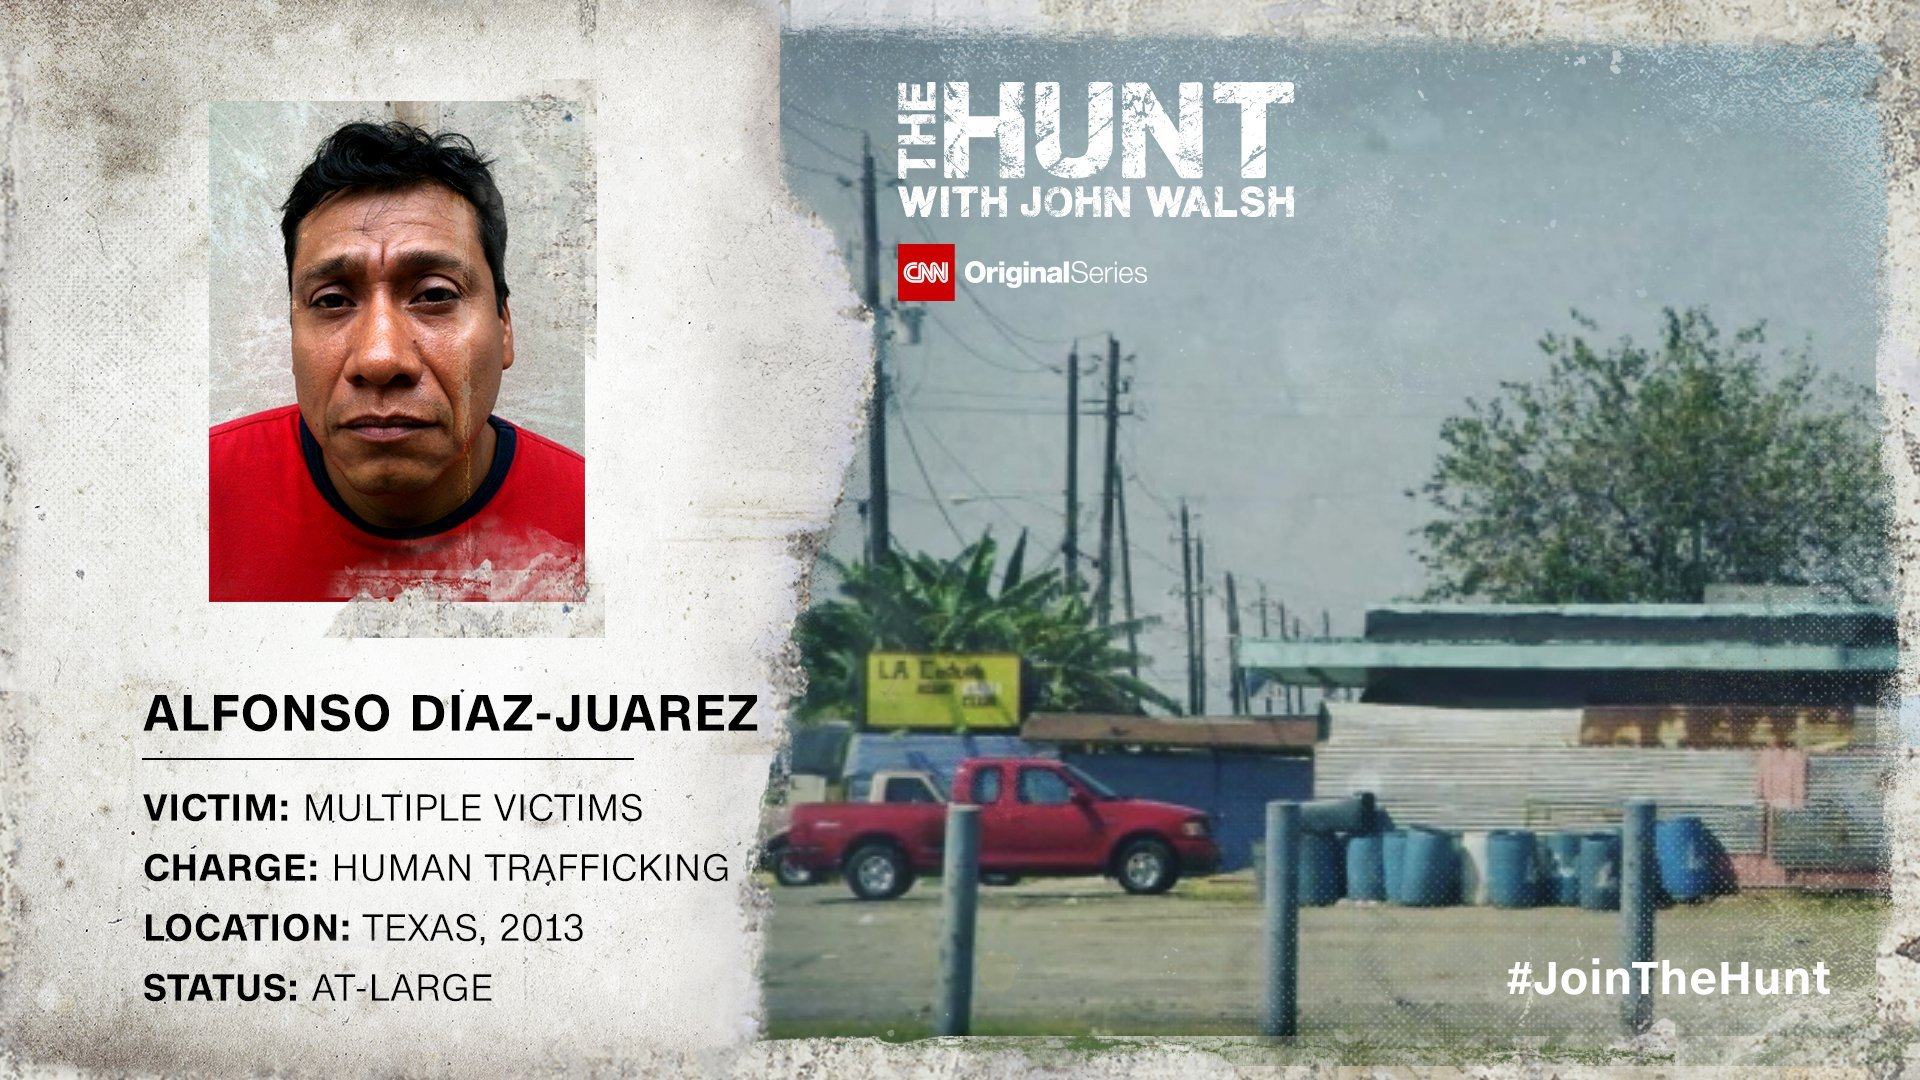 """Alfonso Diaz Juarez is accused of human trafficking in a Houston-area prostitution sting. For fugitives on the run, time is running out. Check out """"The Hunt with John Walsh"""" Sundays at 9 p.m. ET/PT and #JoinTheHunt. Credit:Photo Illustrations/CNN"""